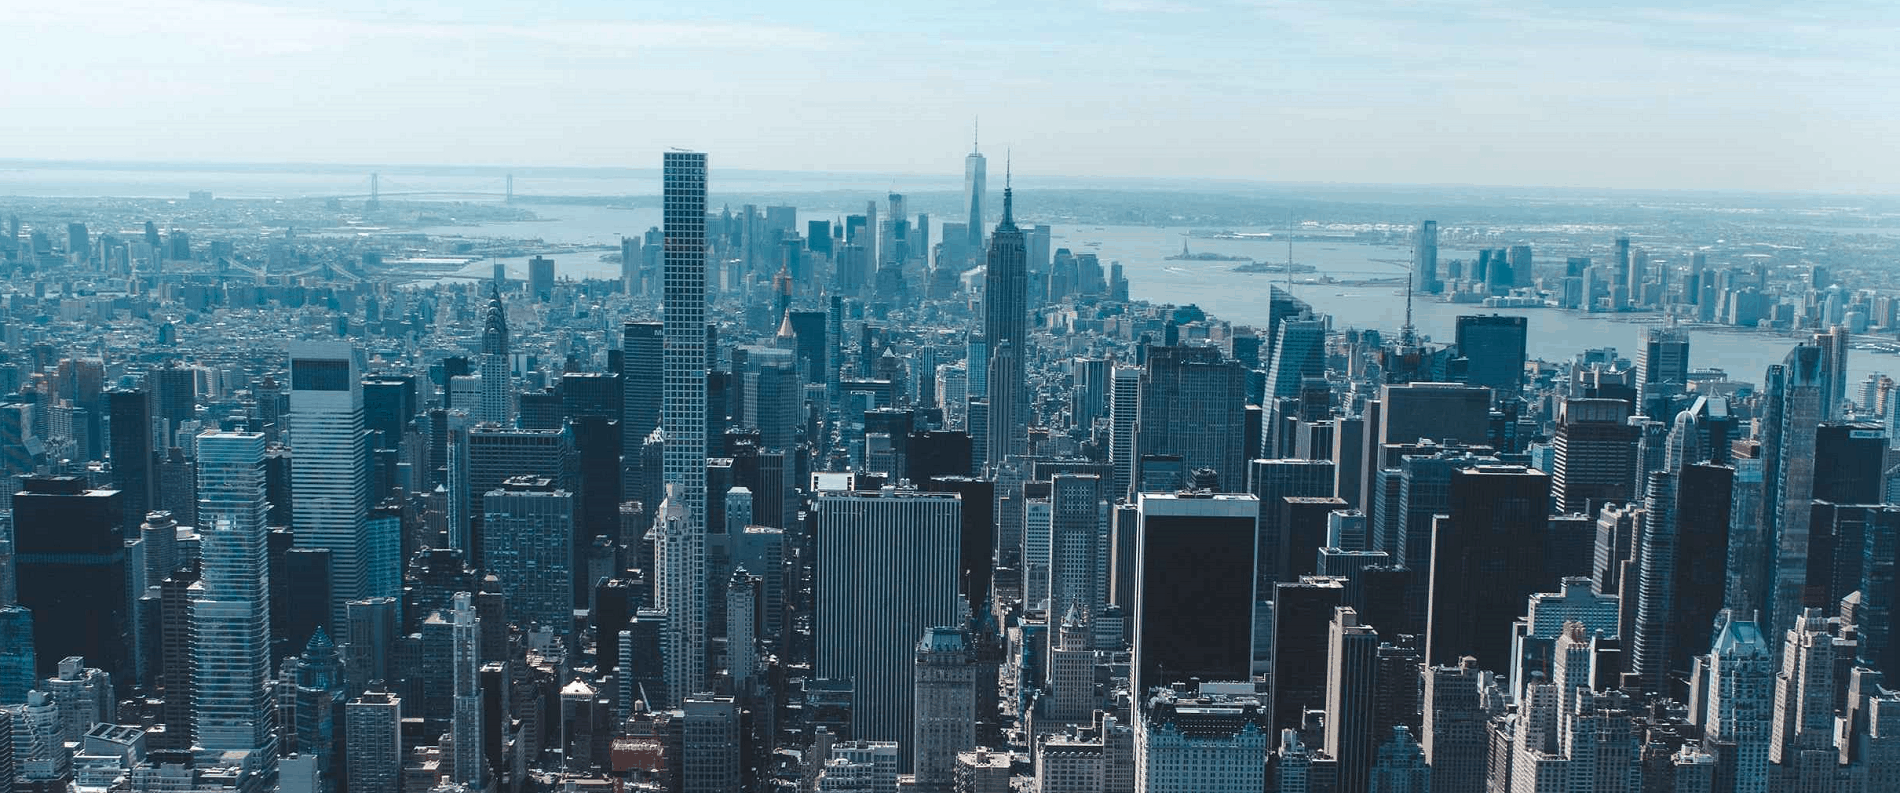 aerial view of new york city for digital pr case study